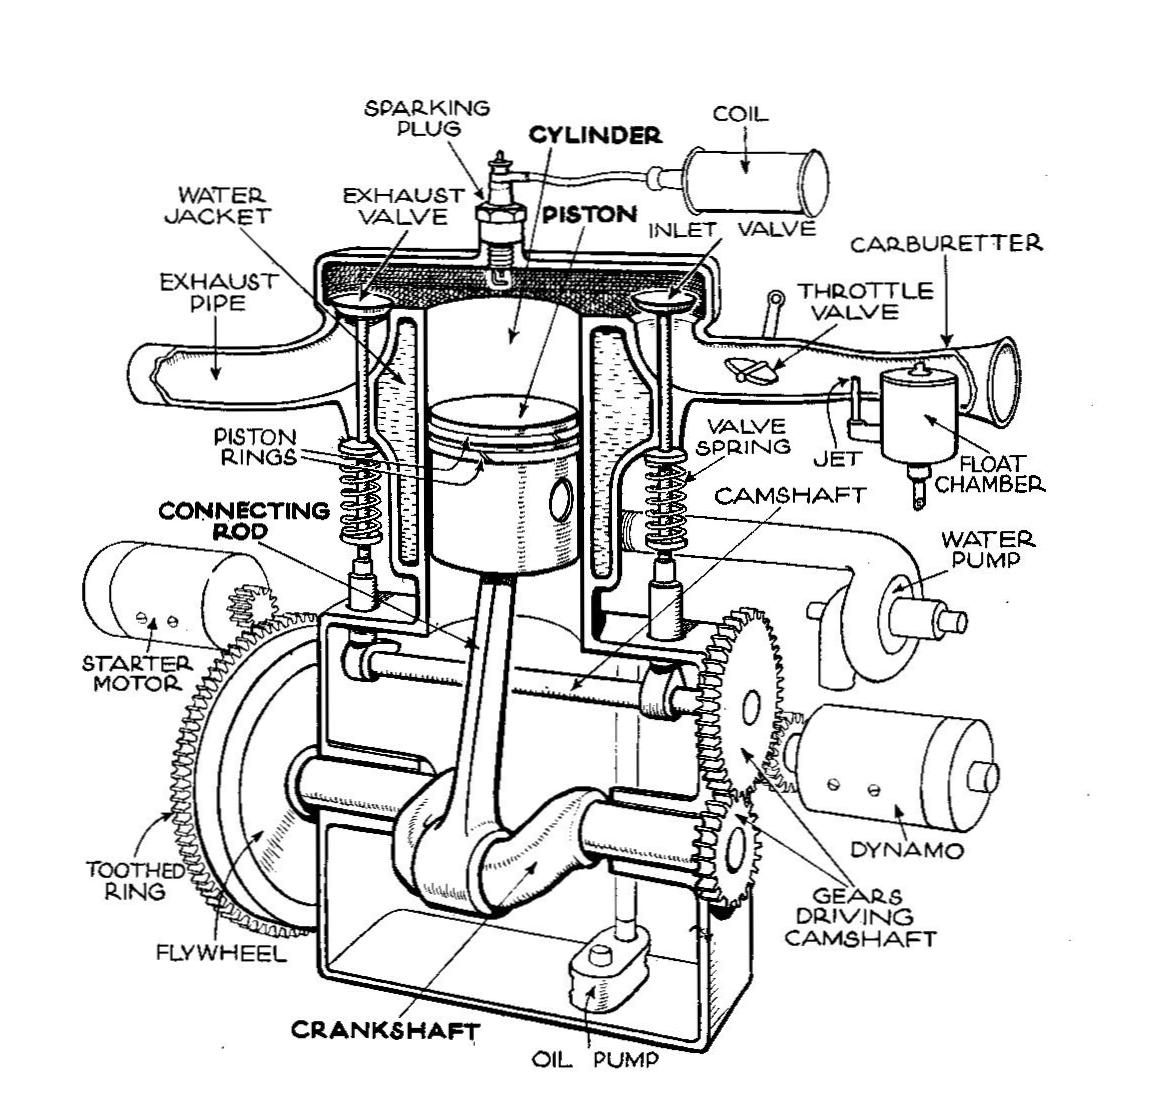 Quincy Manuals further Sr 5 Valve Diagram additionally Hydraulic Pilot Operated Check Valves besides 95 Chevy 4x4 Z71 Actuator Wiring Diagram together with Piping Diagrams Spring Brake Control For Trailers. on bendix air valves diagram